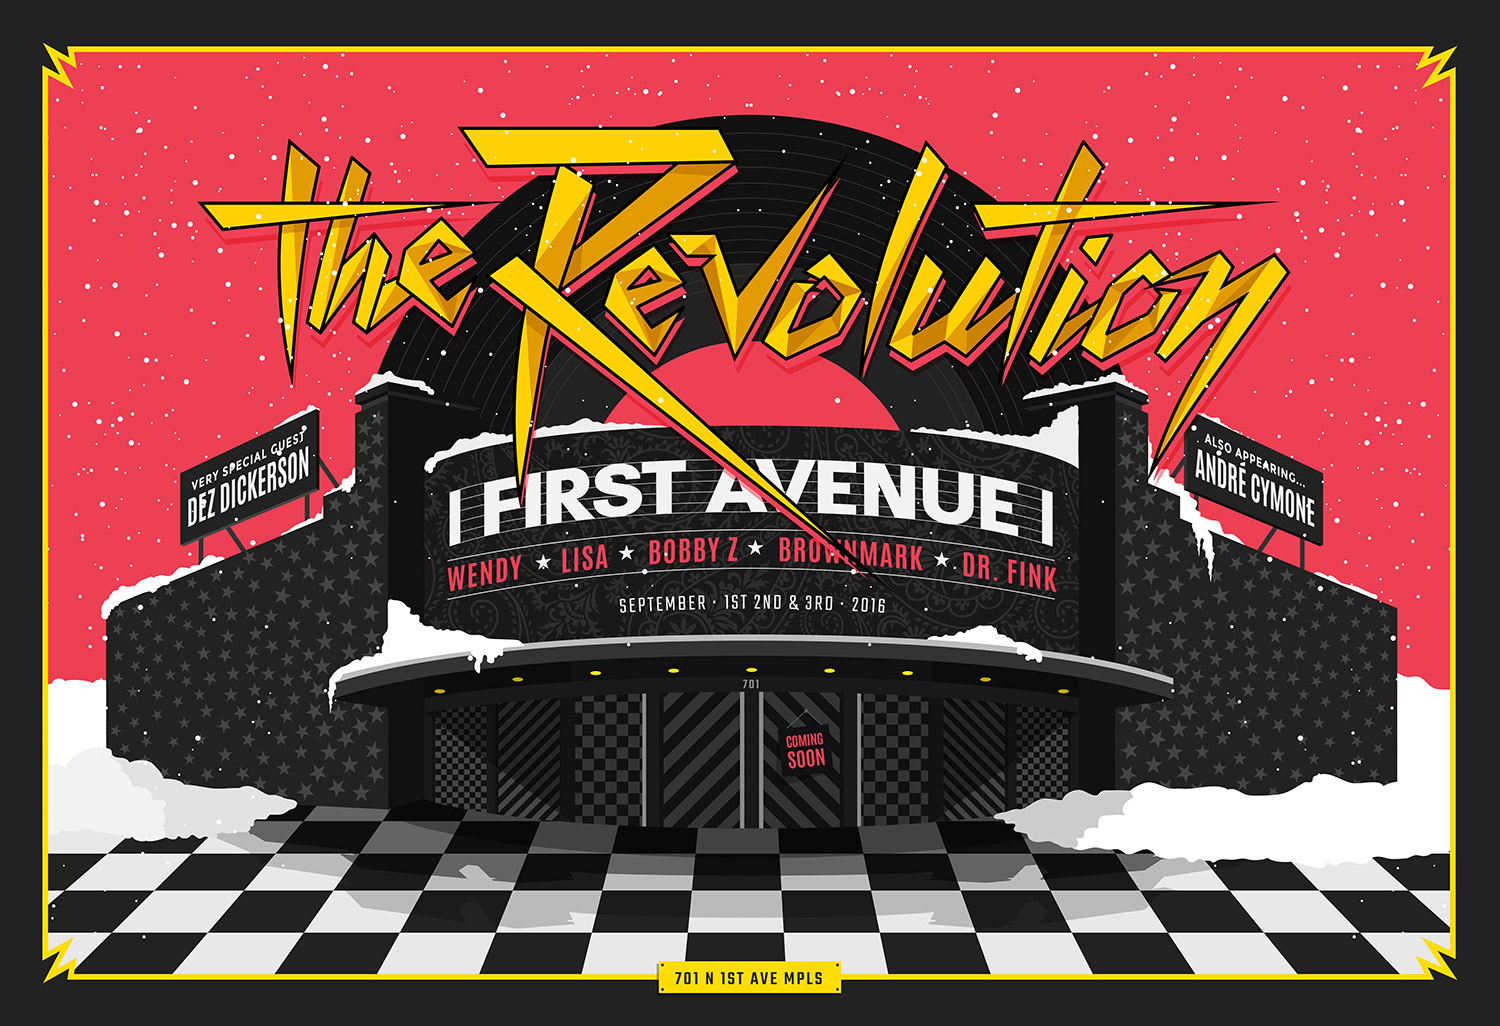 Vector illustration for The Revolution concert poster at Fist Avenue building in Minneapolis, MN / Design by Heidi Skinner